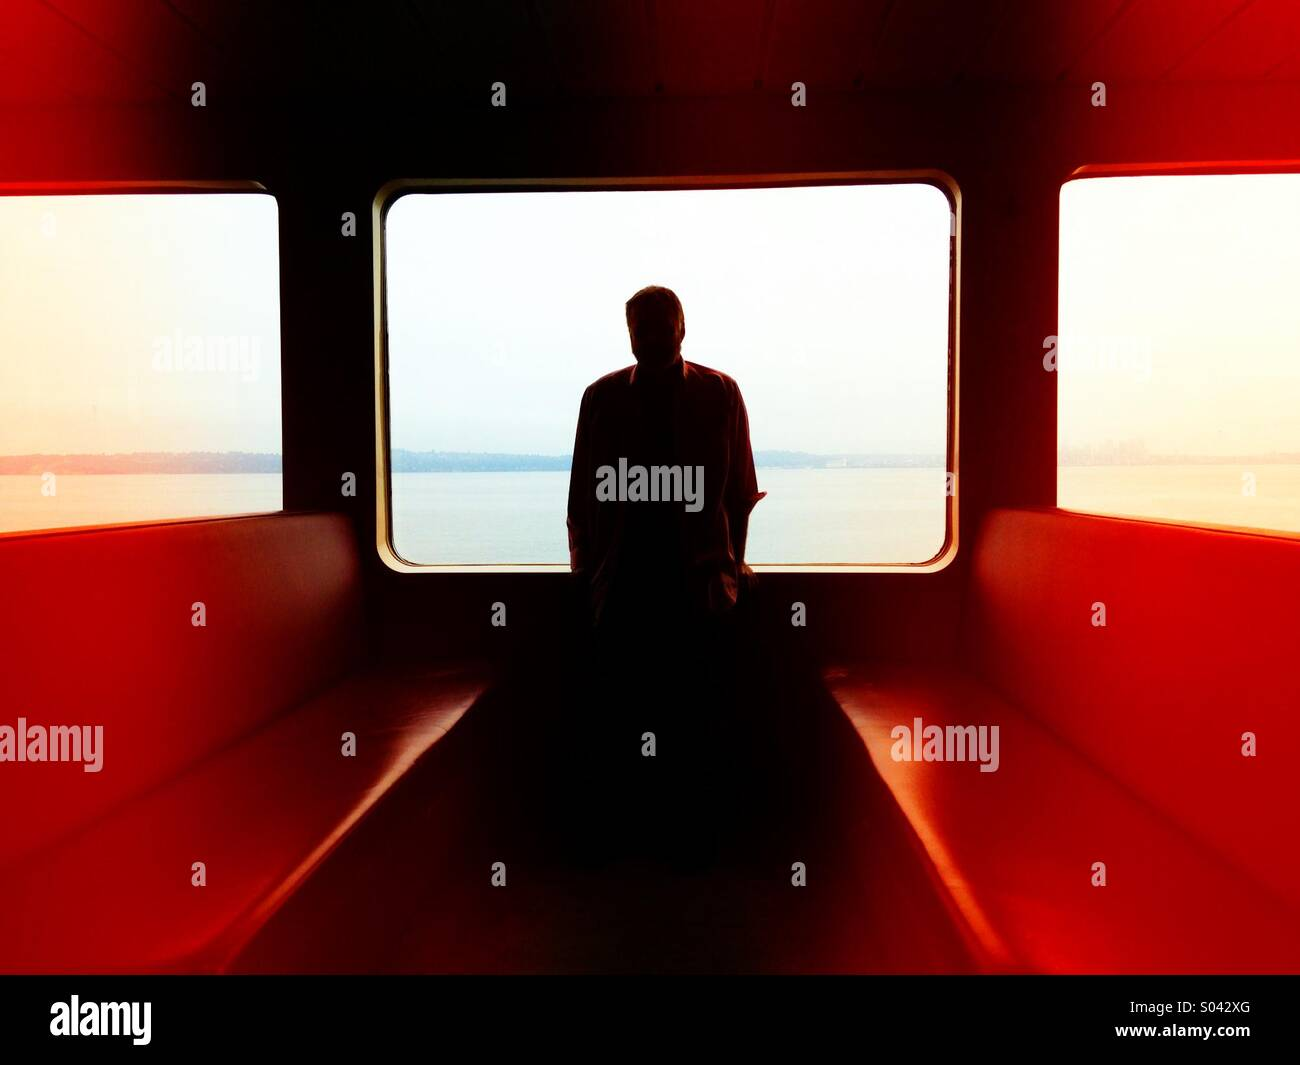 Silhouette of a man in the window of a ferry boat in Puget Sound - Stock Image